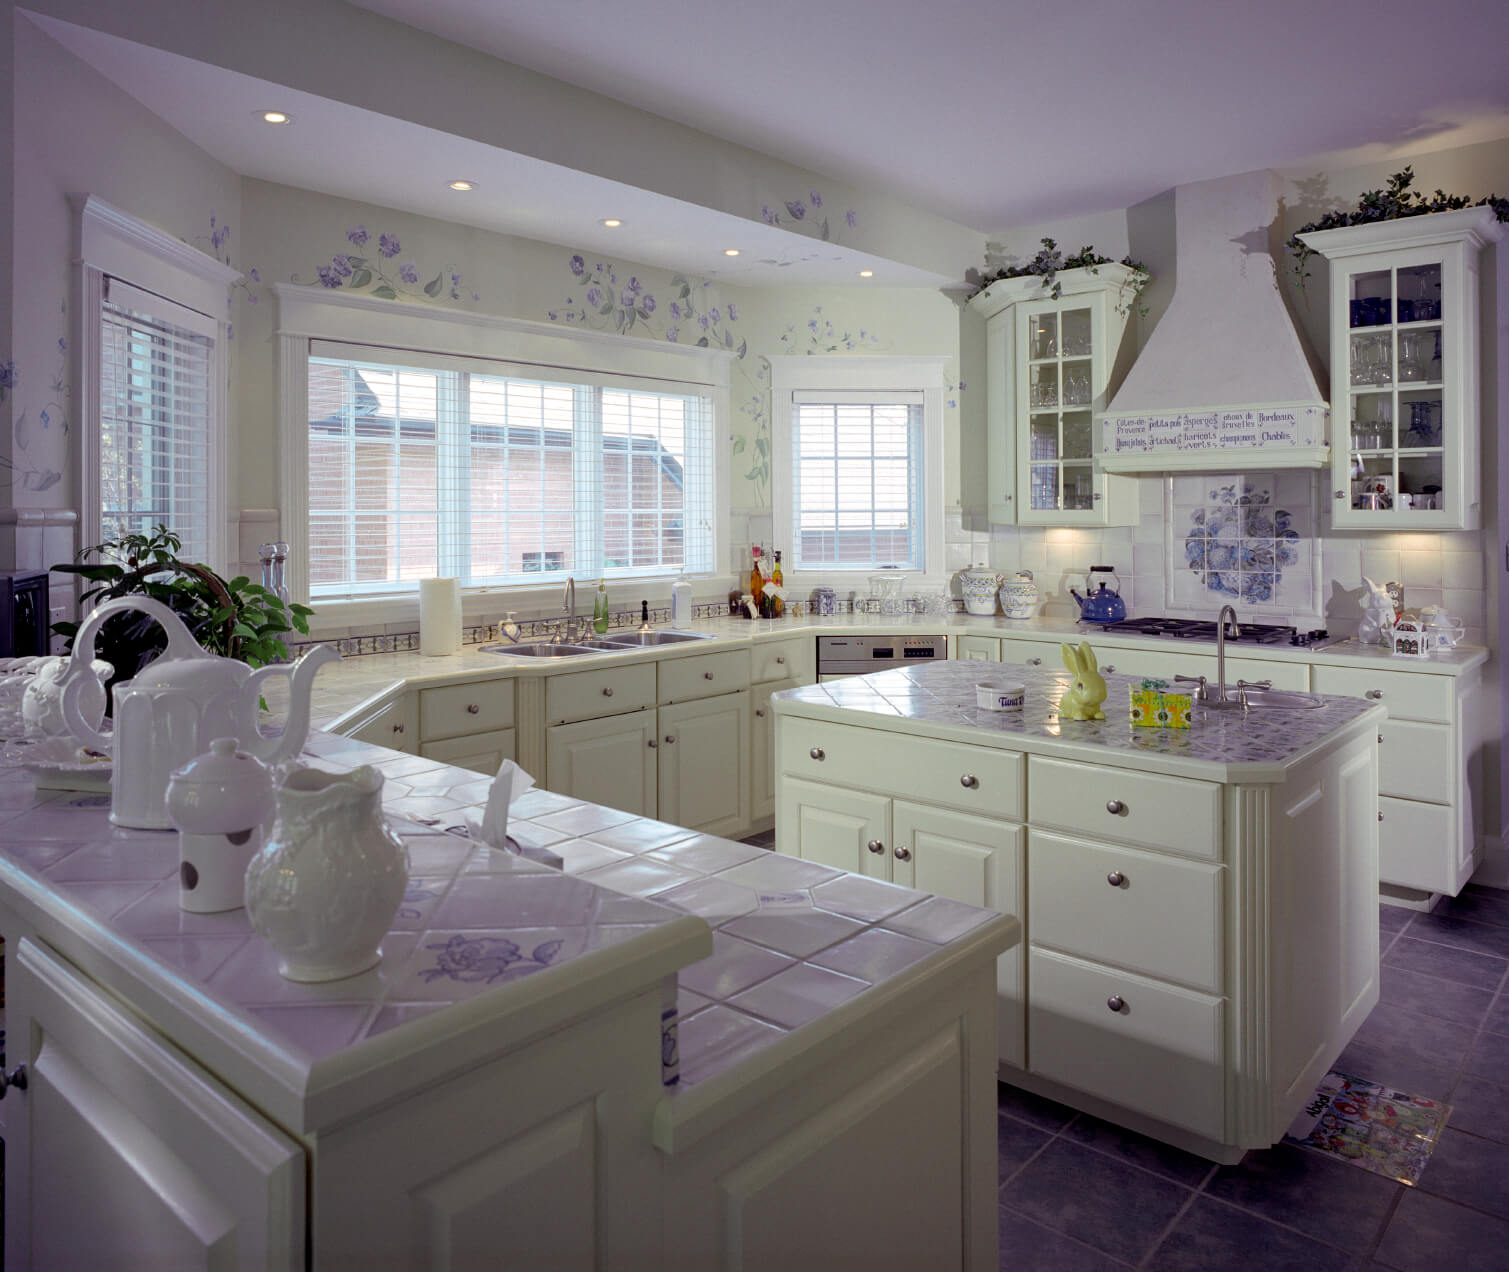 white kitchen designs pictures kitchen countertop tile This white kitchen is enlivened by a smattering of purple throughout purple tile flooring